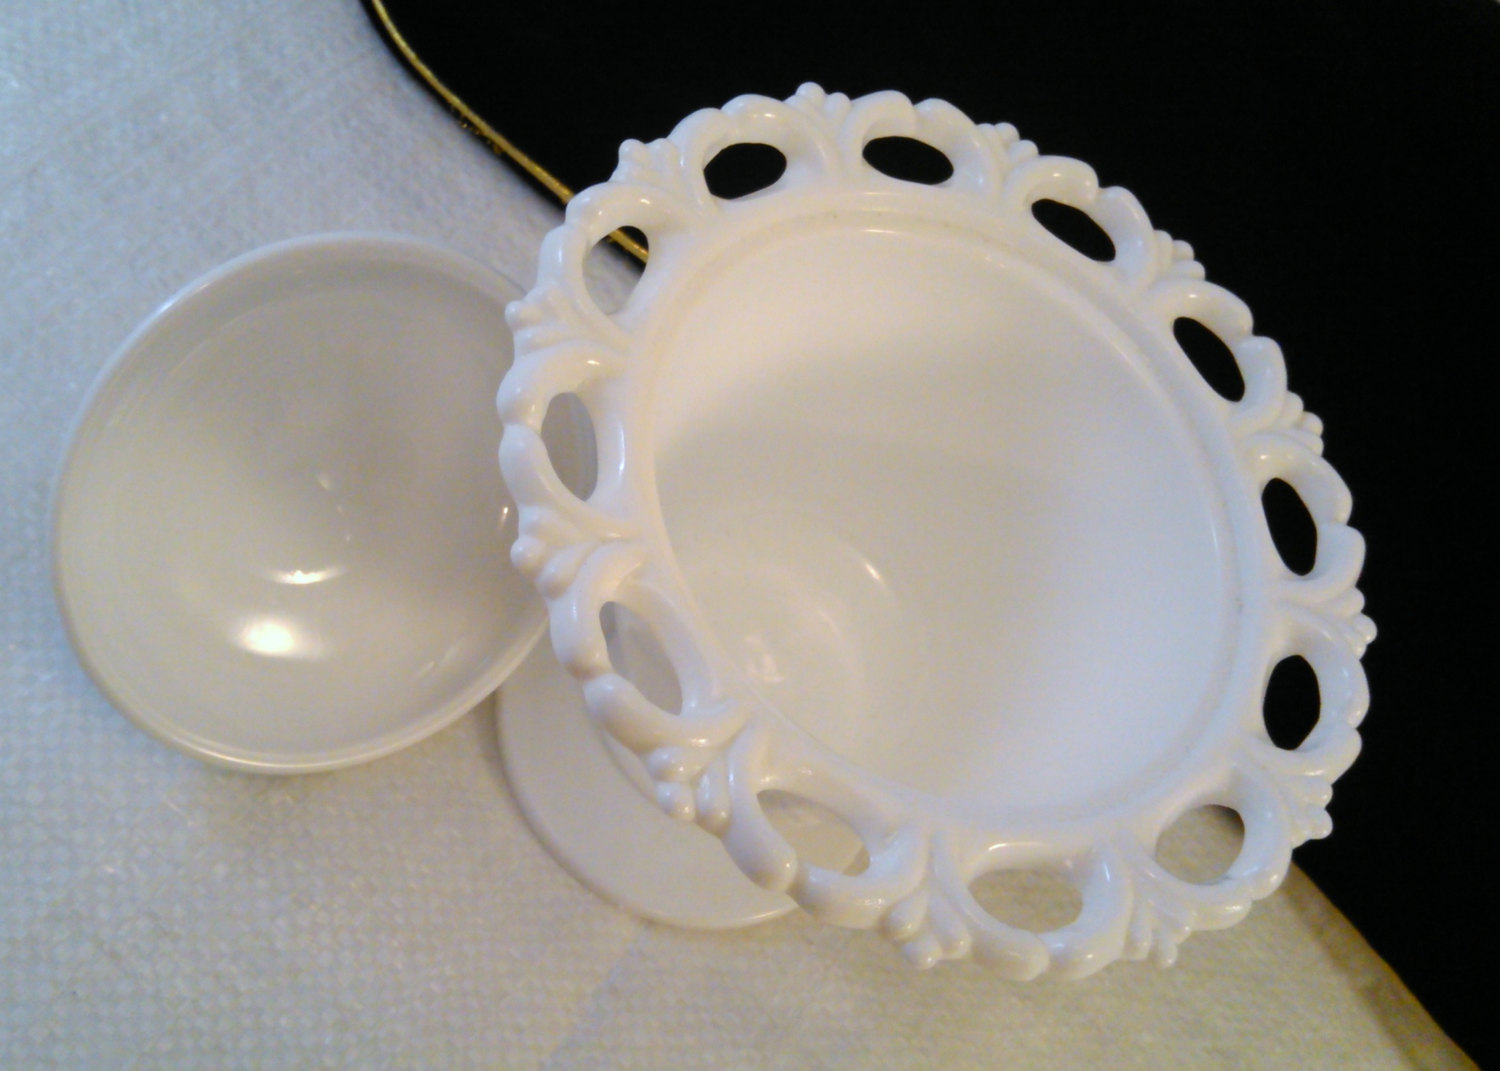 Vintage Grape & Vine Lace Edge Pedestal Milk Glass Candy Dish Bowl w/Lid